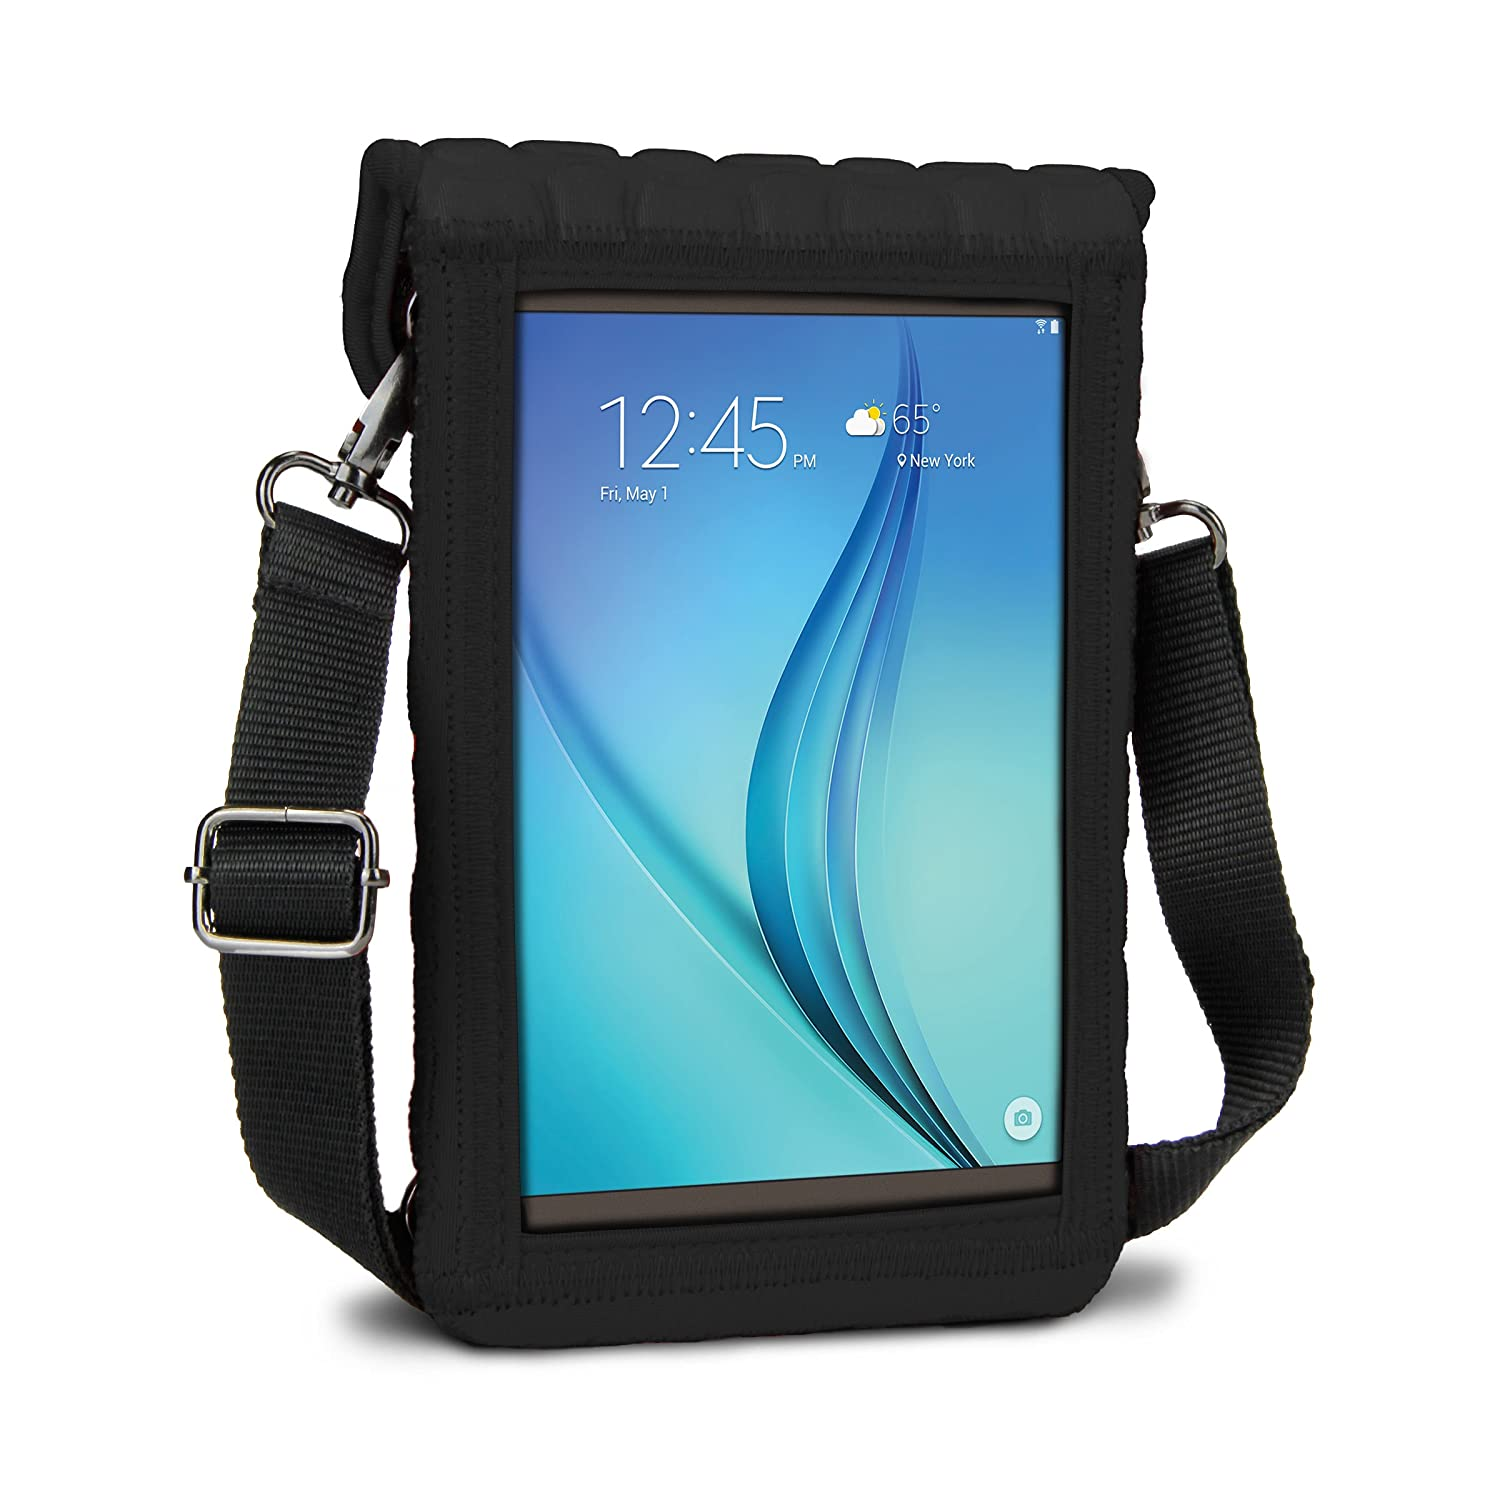 Tab A Tab E Compatible with Samsung Galaxy Tab A2 S Red Tab S2 USA Gear 7 Inch Tablet Case Neoprene Sleeve Cover with Built-in Screen Protector /& Carry Strap Asus ZenPad S